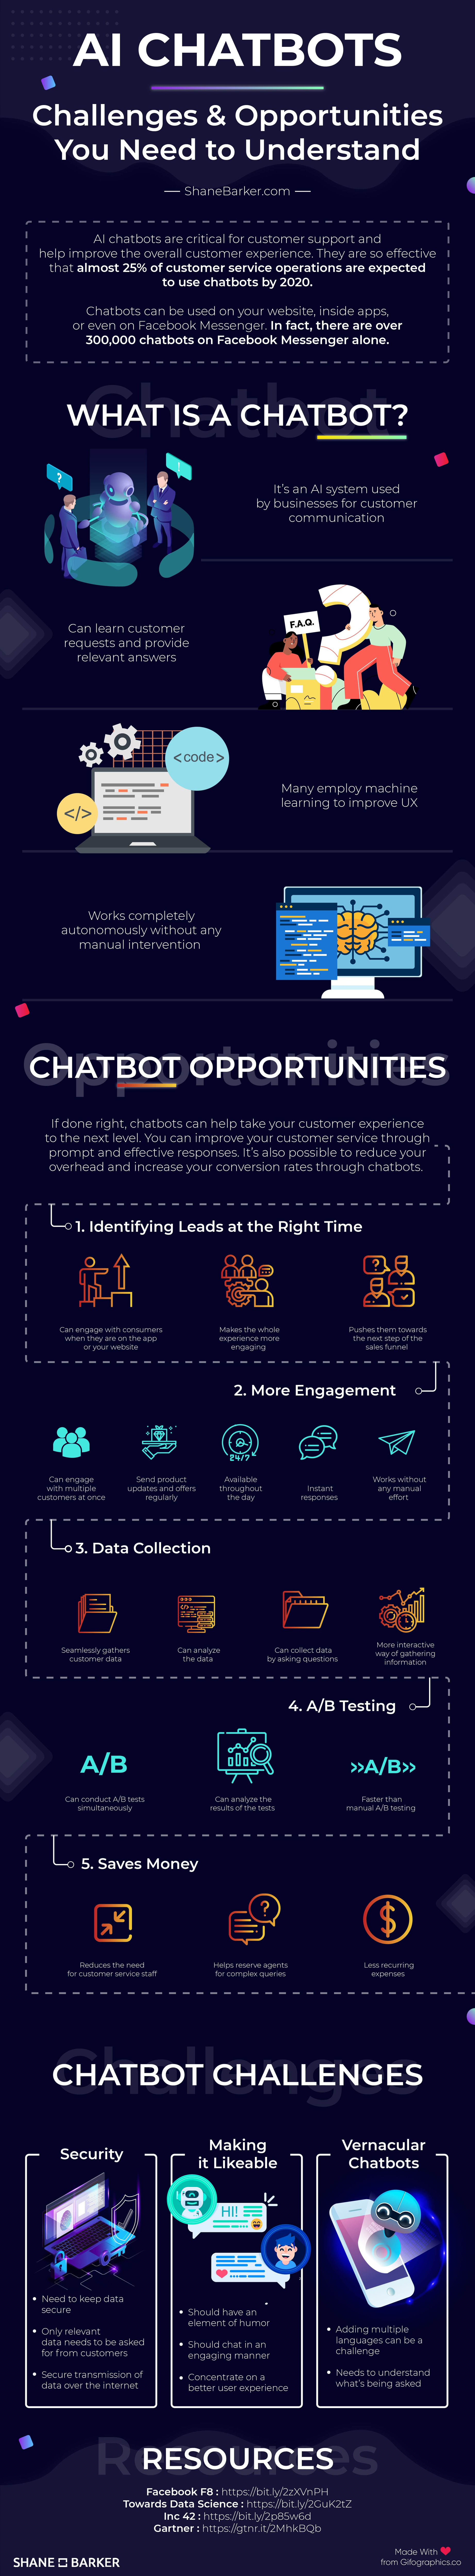 AI Chatbots Challenges and Opportunities You Need to Understand-min